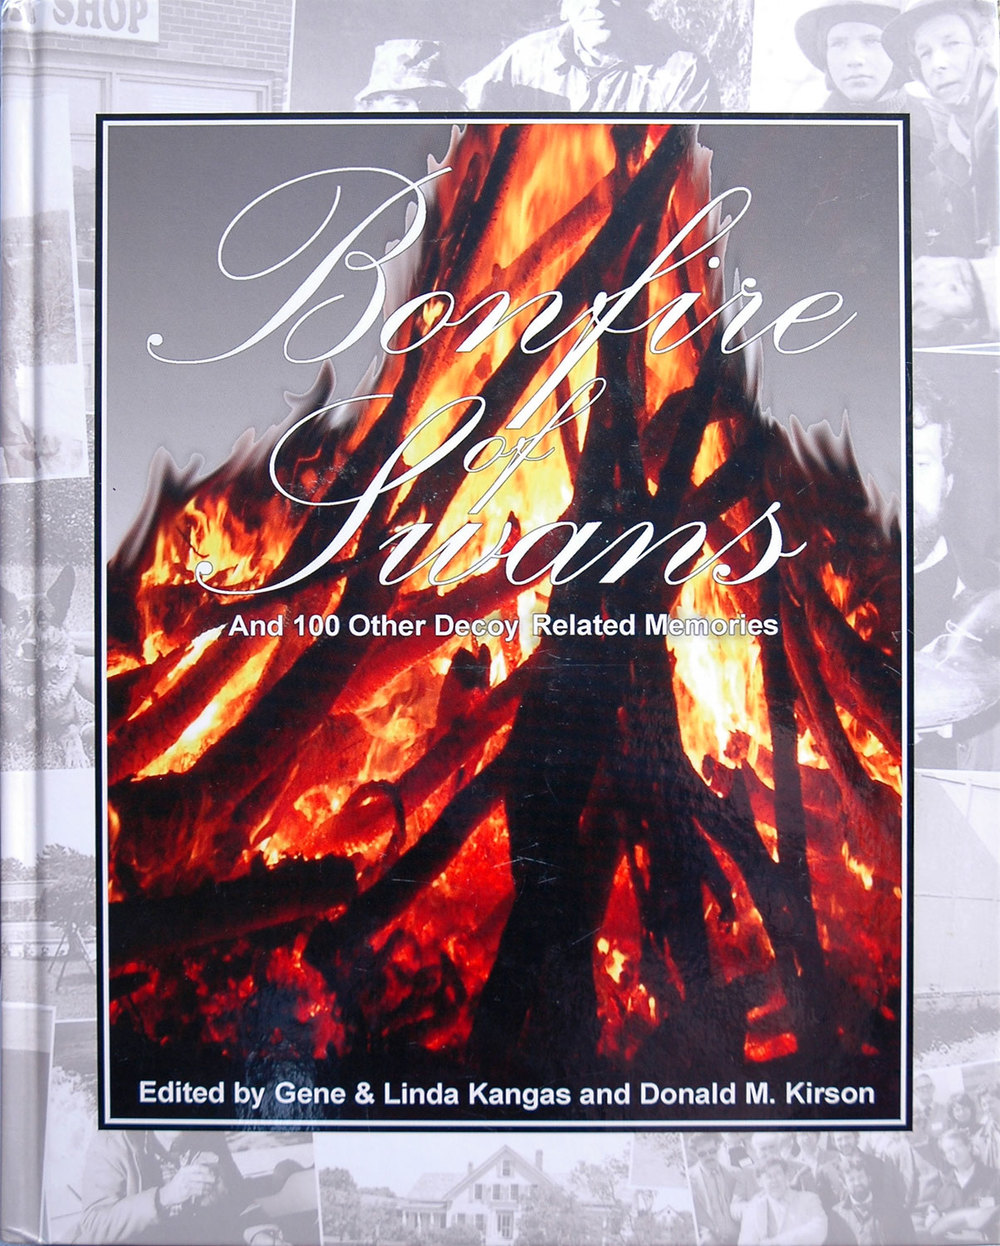 a21-bonfire-of-swans-book.jpg